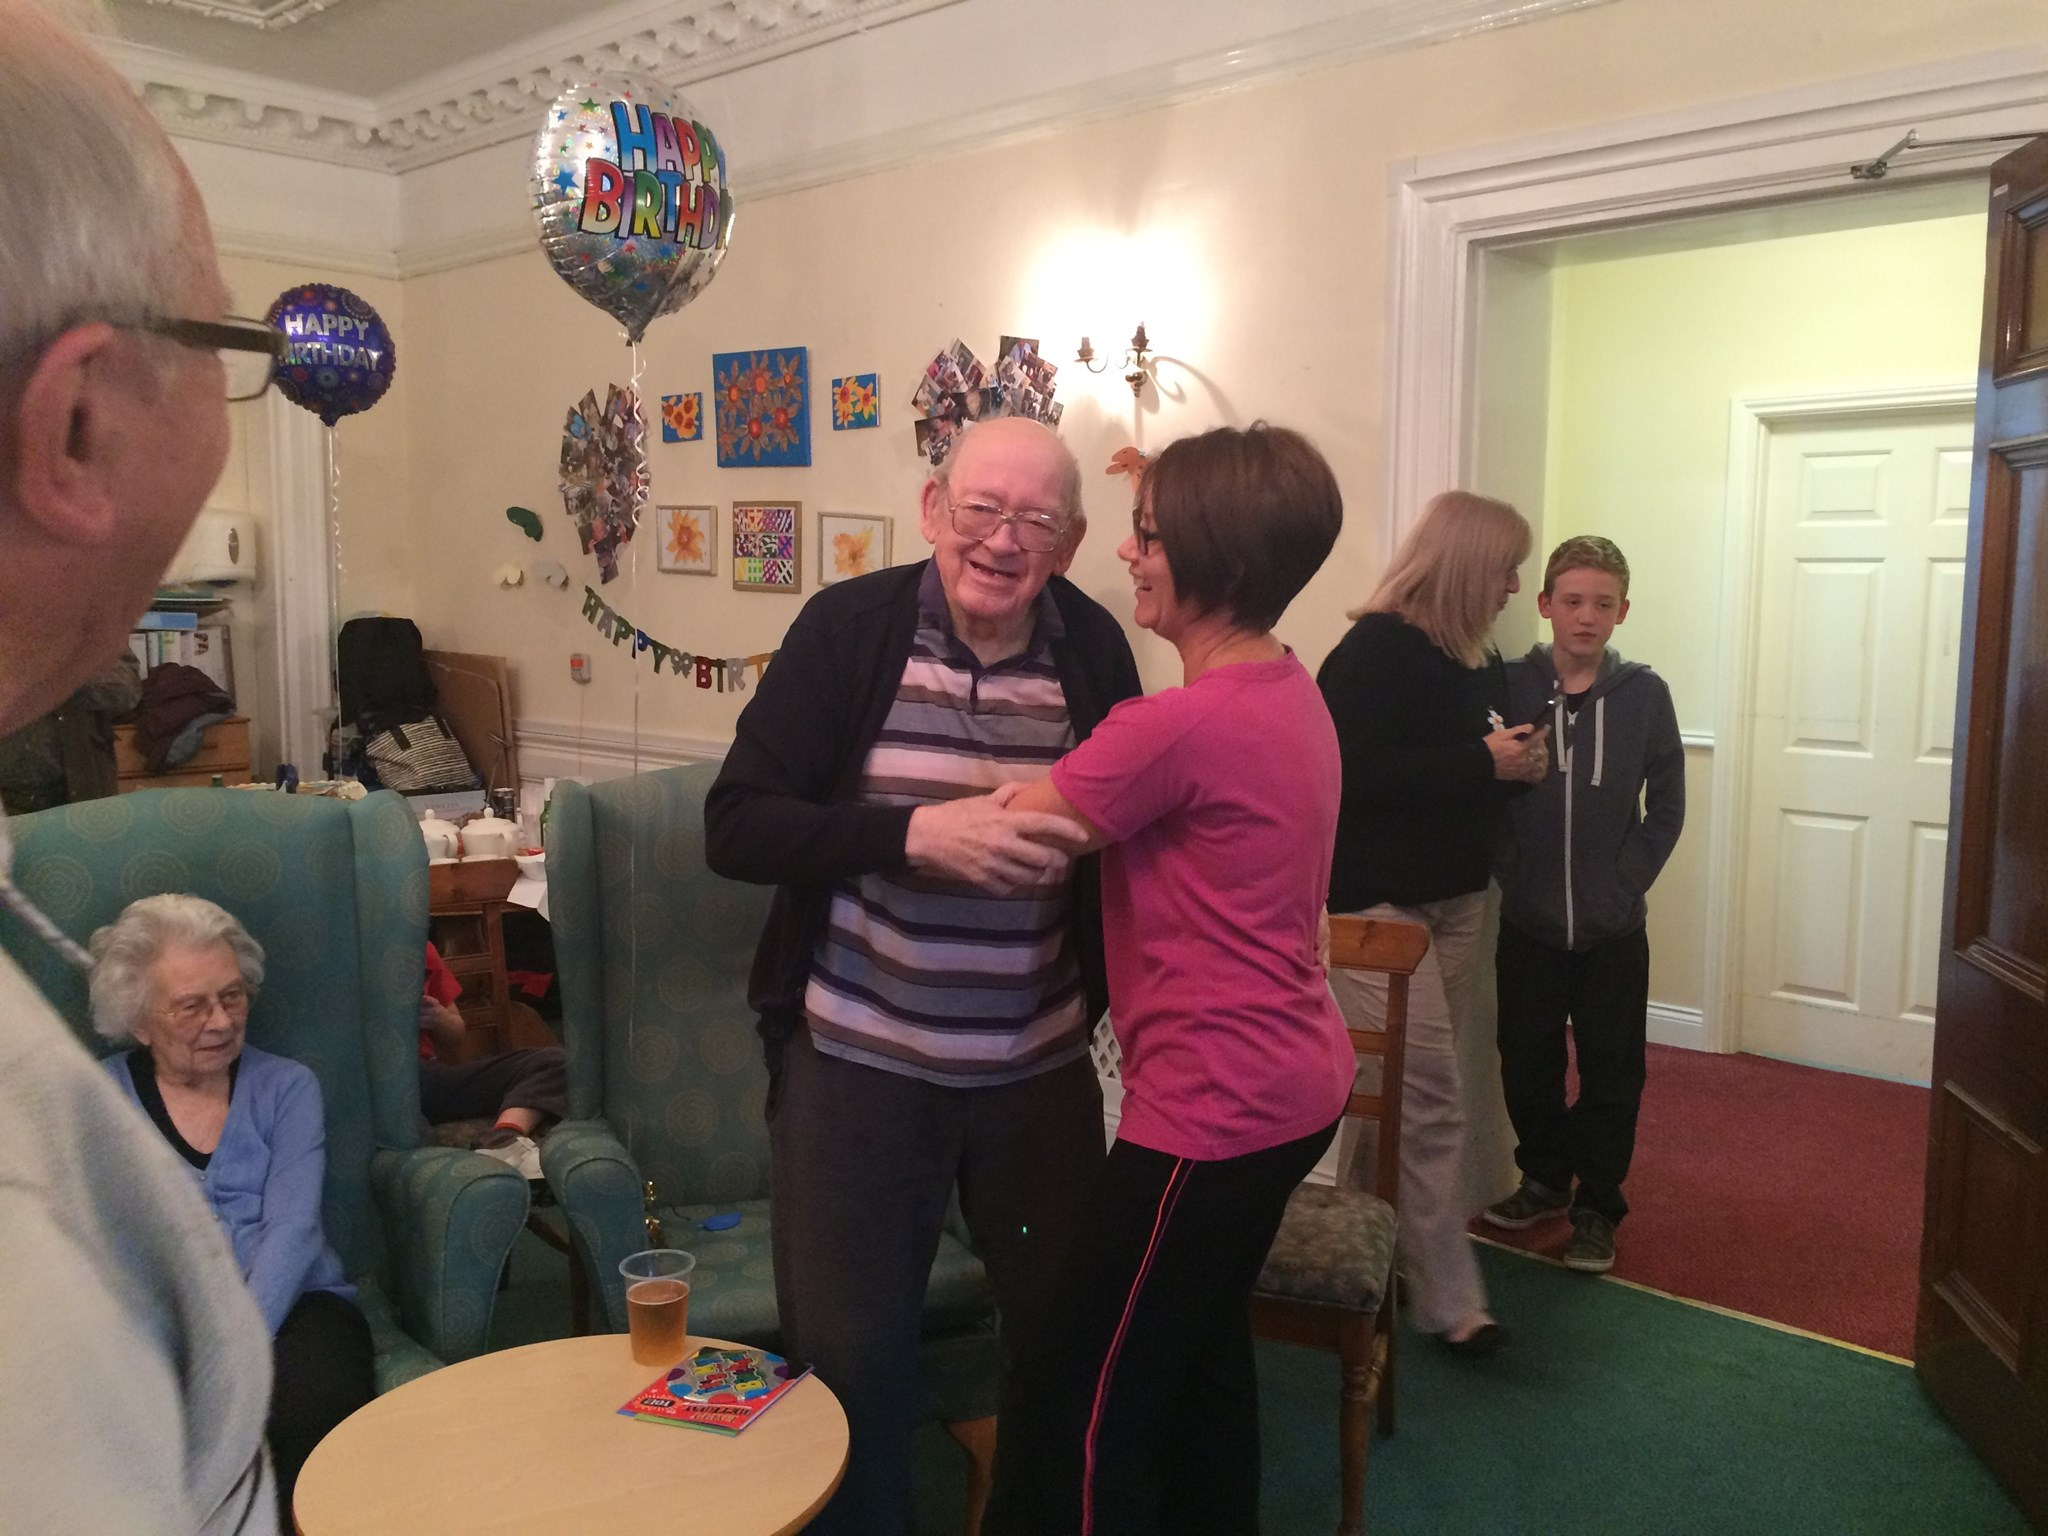 Leanne and David having a dance on his birthday